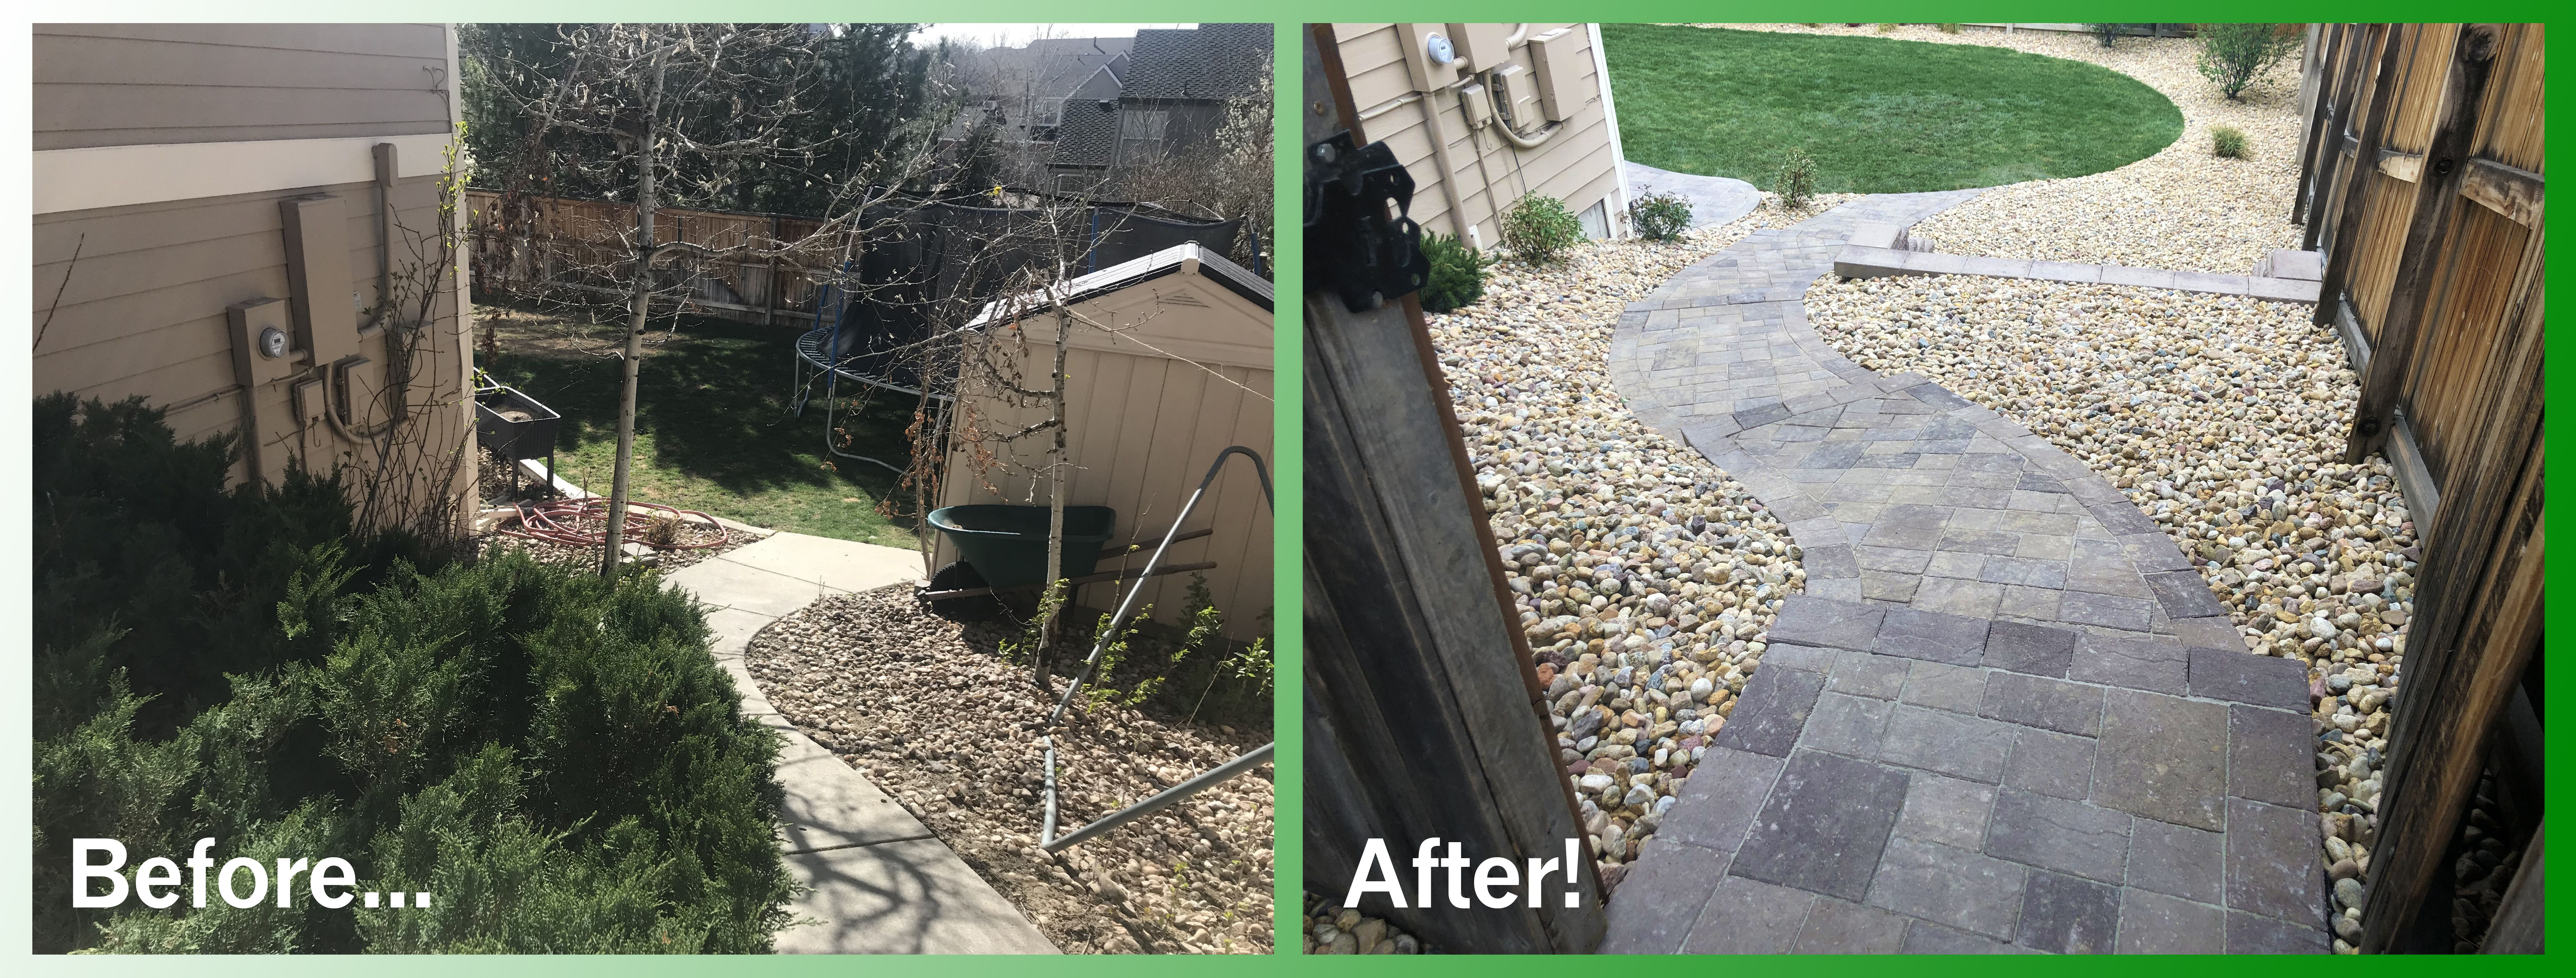 Before After Of Back Yard Landscape Project Landscape Projects Yard Landscaping Landscaping Around Trees